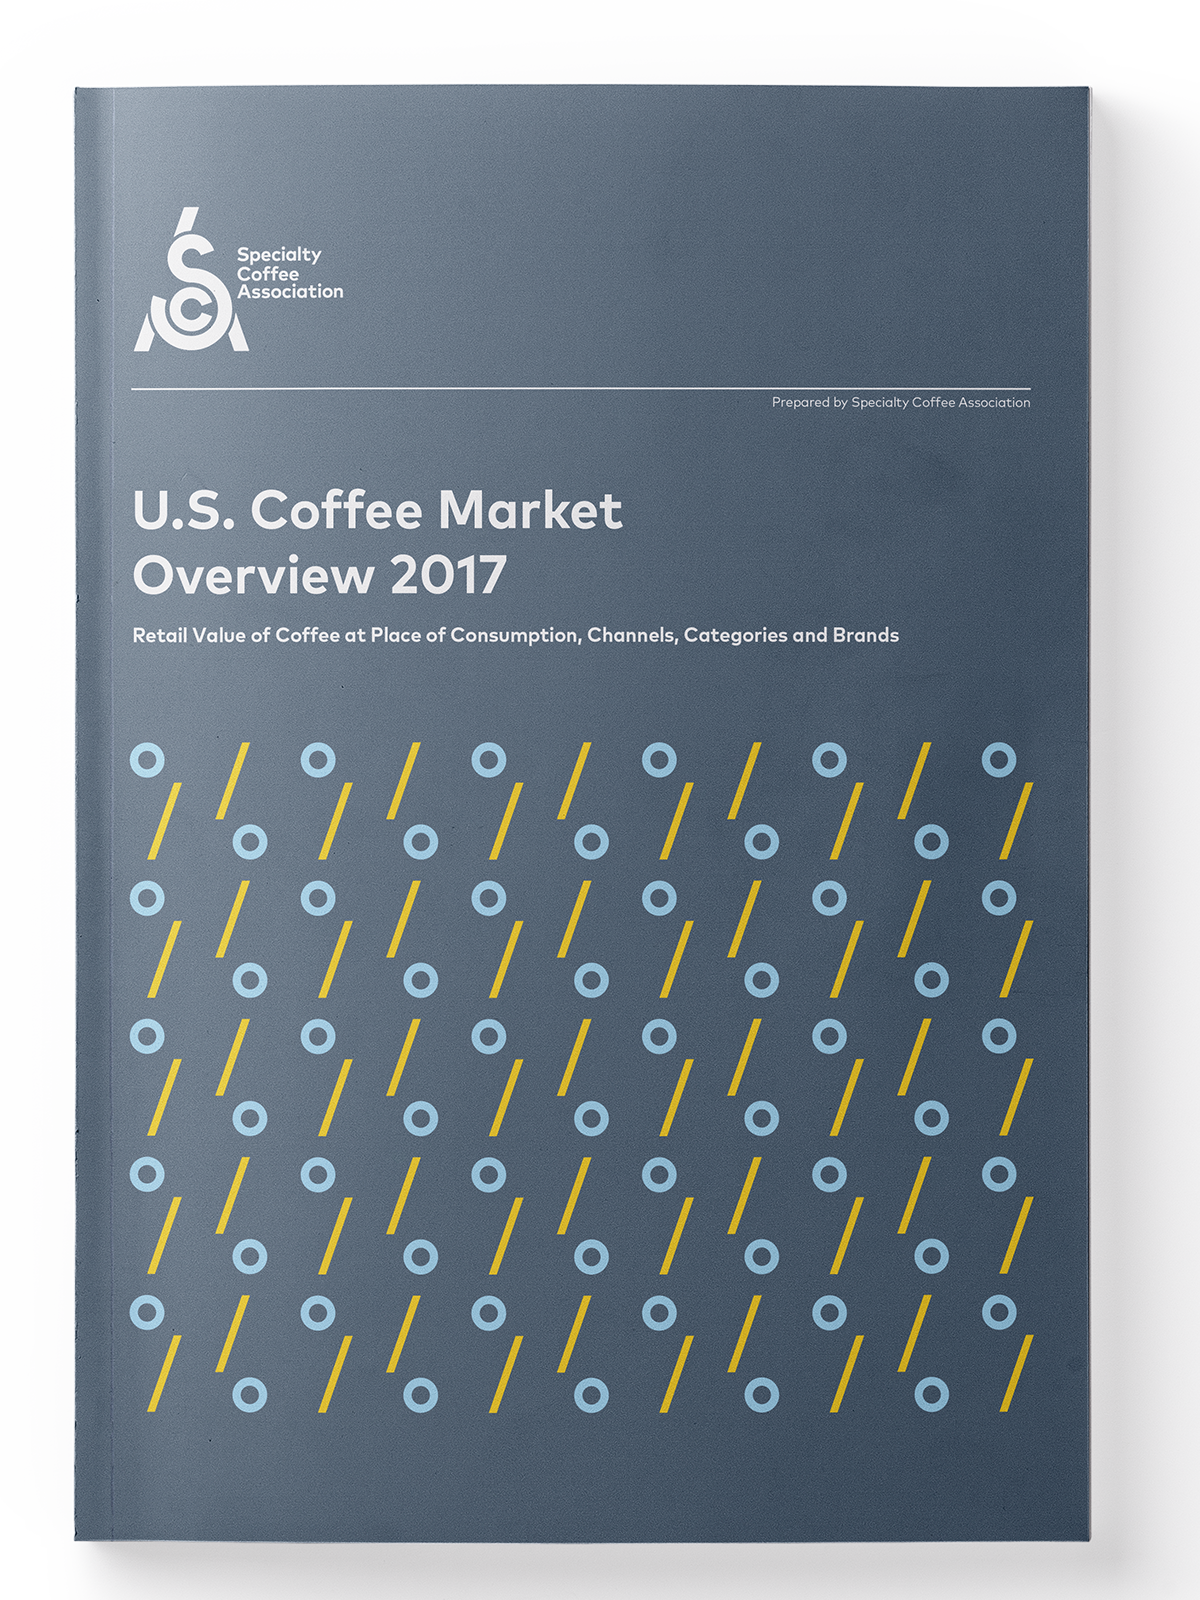 2017 U.S. Coffee Market Overview   SCA has developed an overview of the 2017 U.S. coffee market in terms of the dollar value at retail. This analysis delves deep into the retail values at place of consumption through channels, categories, and brands.   Member Access   Buy Now